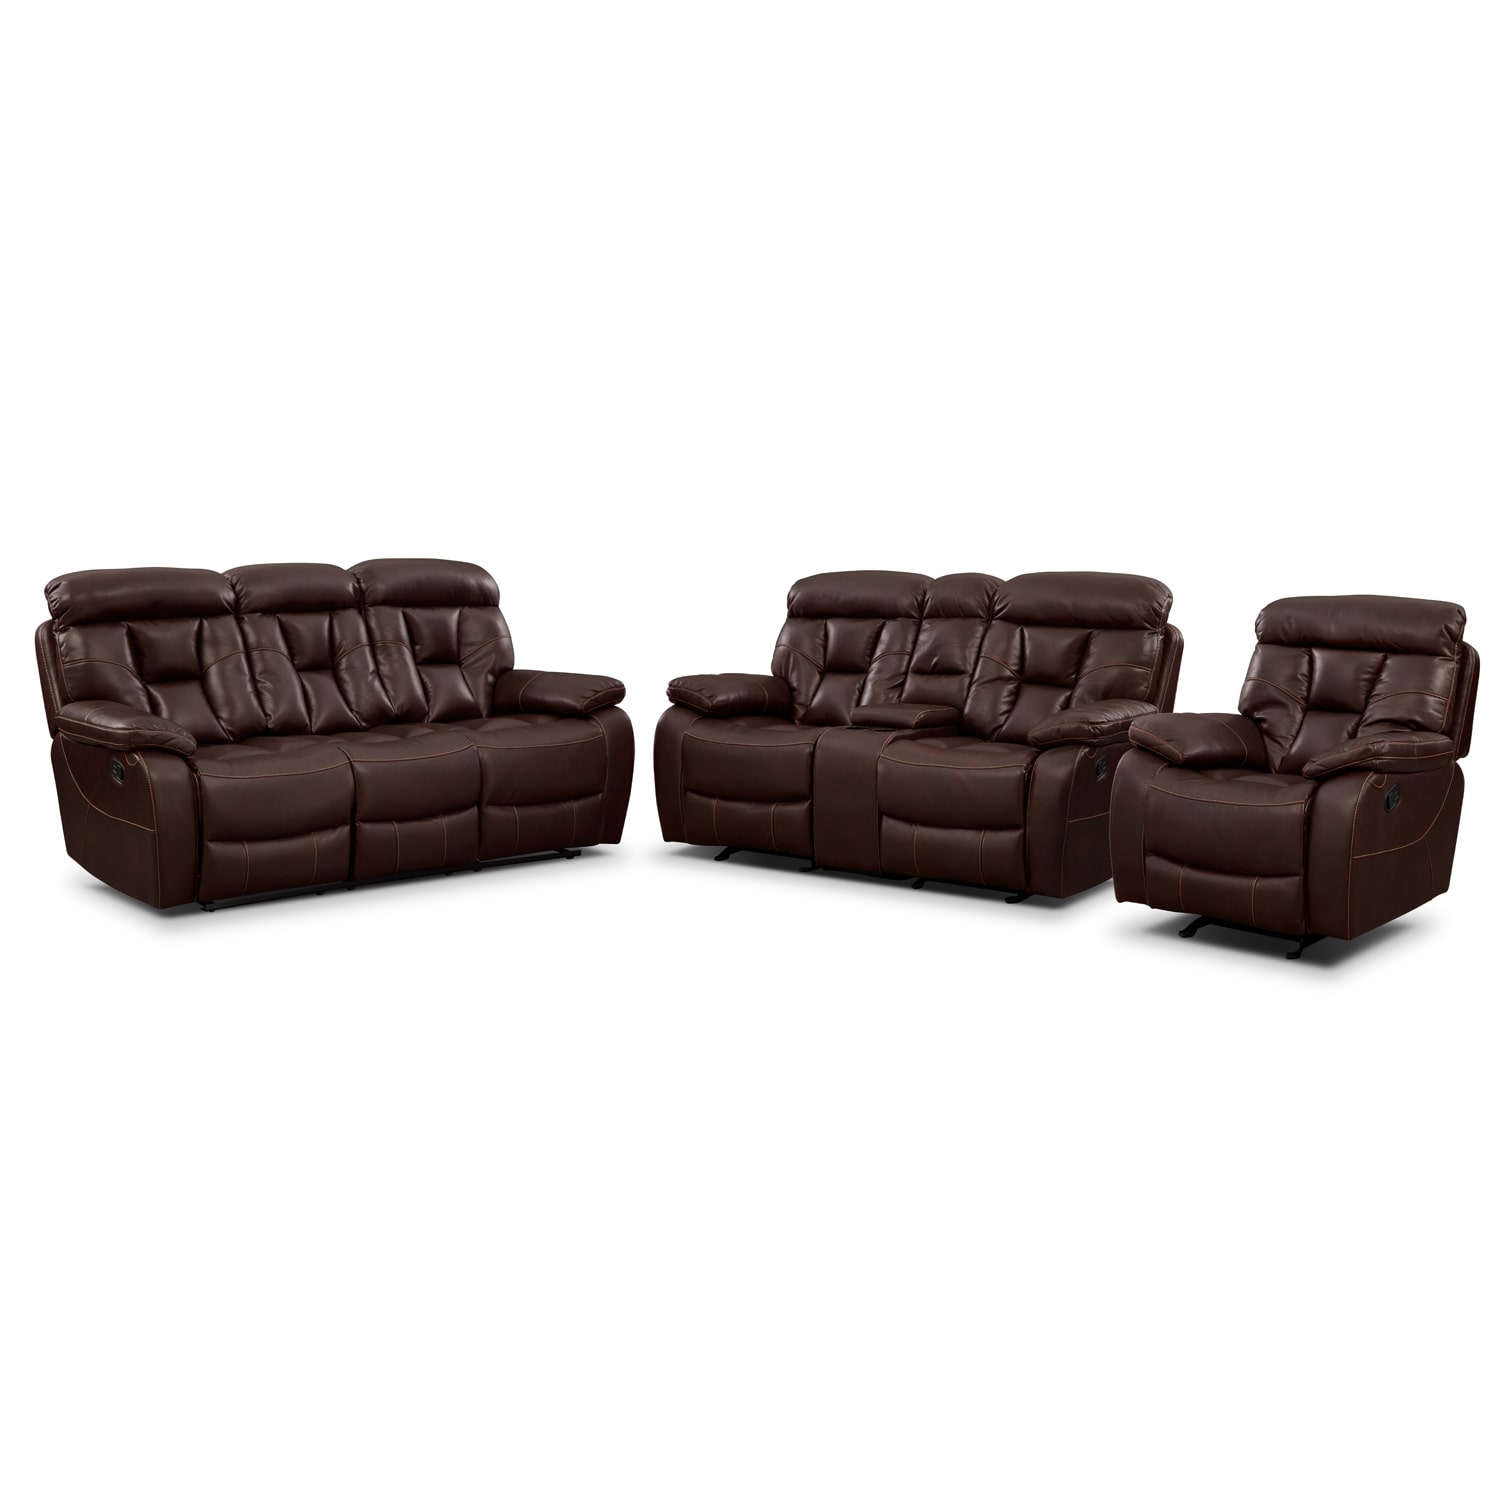 Dakota Glider Reclining Loveseat With Console Value City